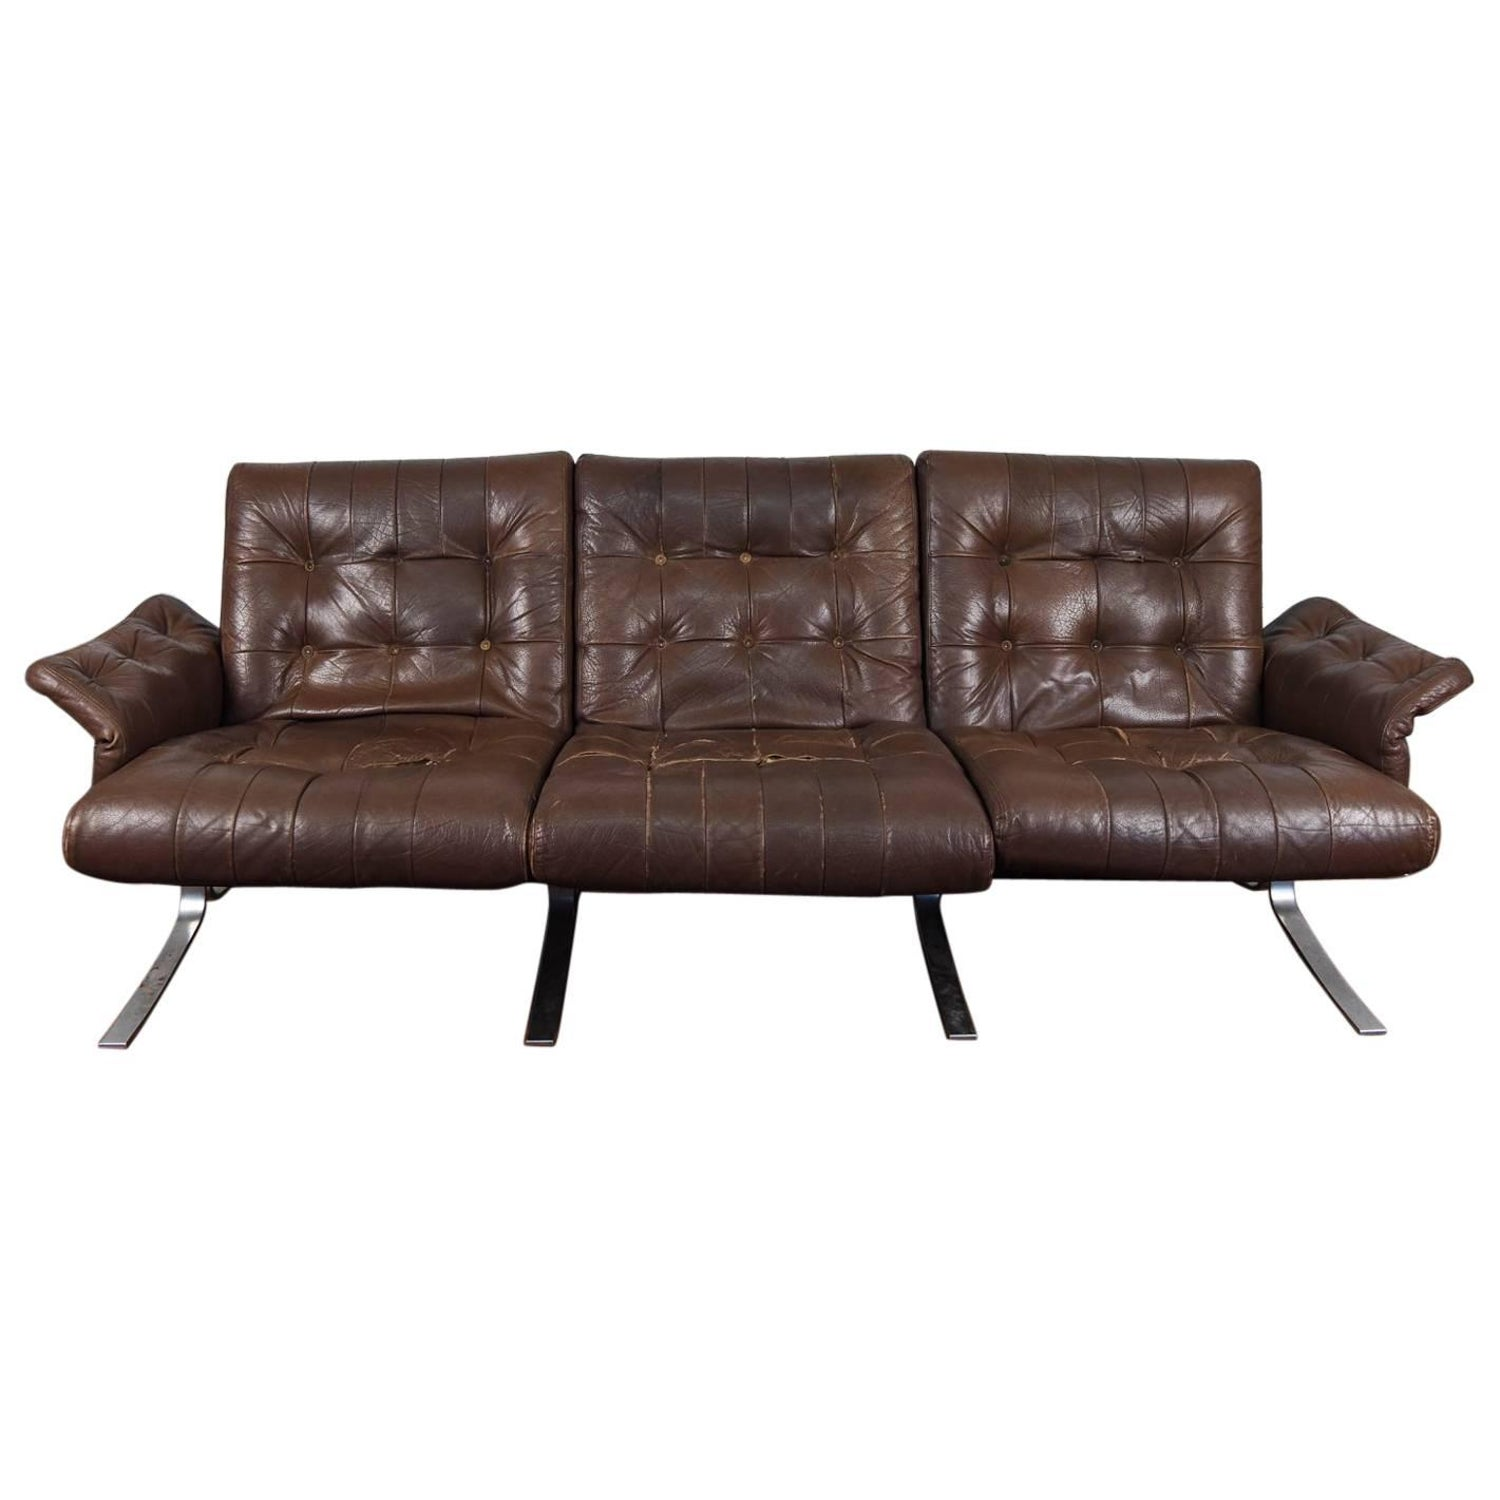 Danish Modern Tufted Leather and Metal Frame Sofa by Ebbe Gehl at